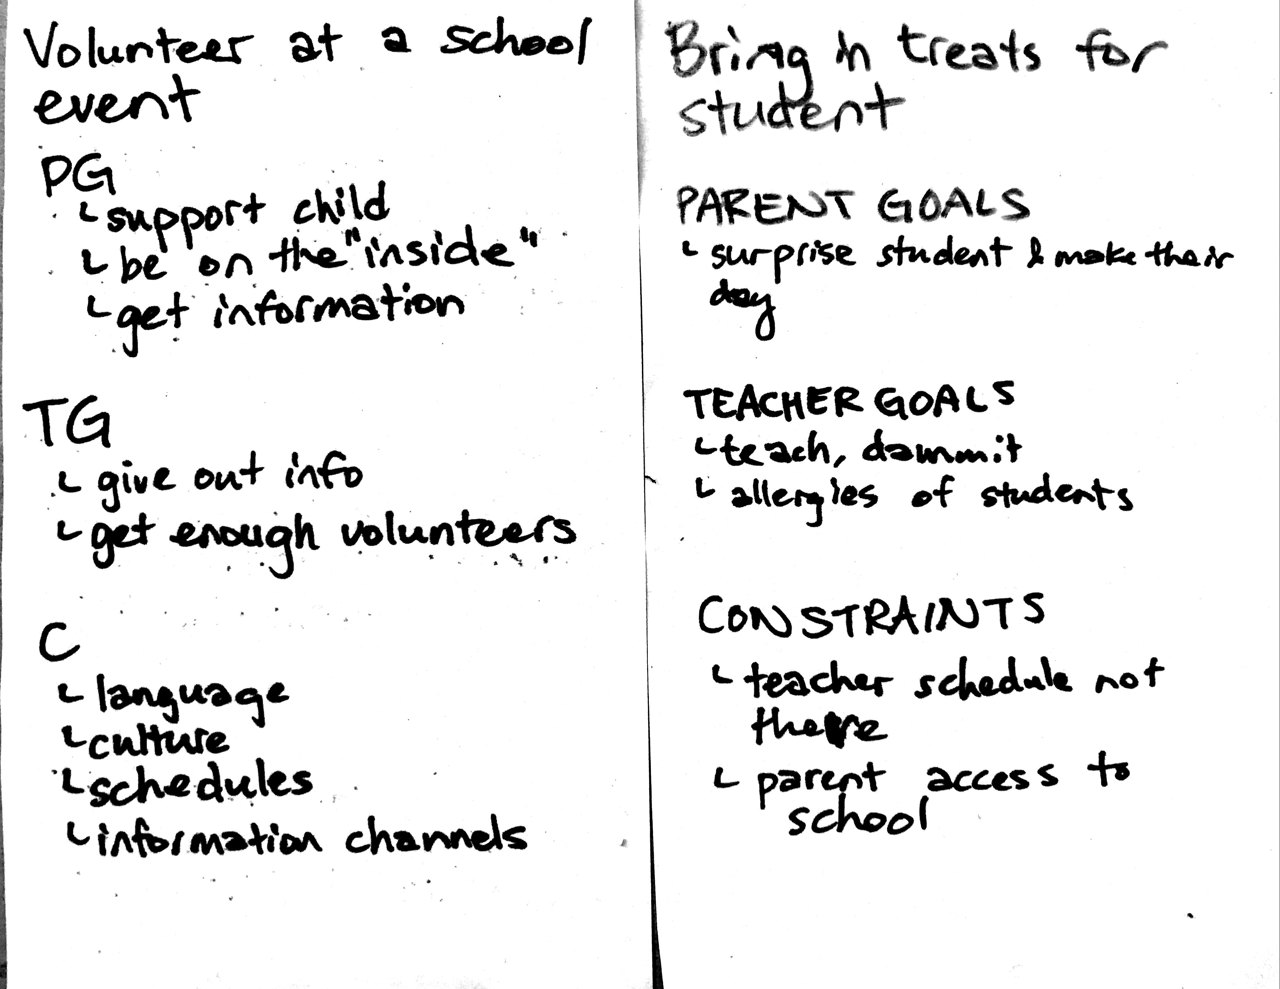 Two cards with scenarios. The first card says: Volunteer at a school event. Parent goals: support child, be on the 'inside', get information. Teacher goals: give out info, get enough volunteers. Constraints: language, culture, schedules, information channels. The second card says: Bring in treats for student. Parent goals: surprise student and make their day. Teacher goals: teach, dammit, allergies of students. Constraints: teacher schedule not there, parent access to school.